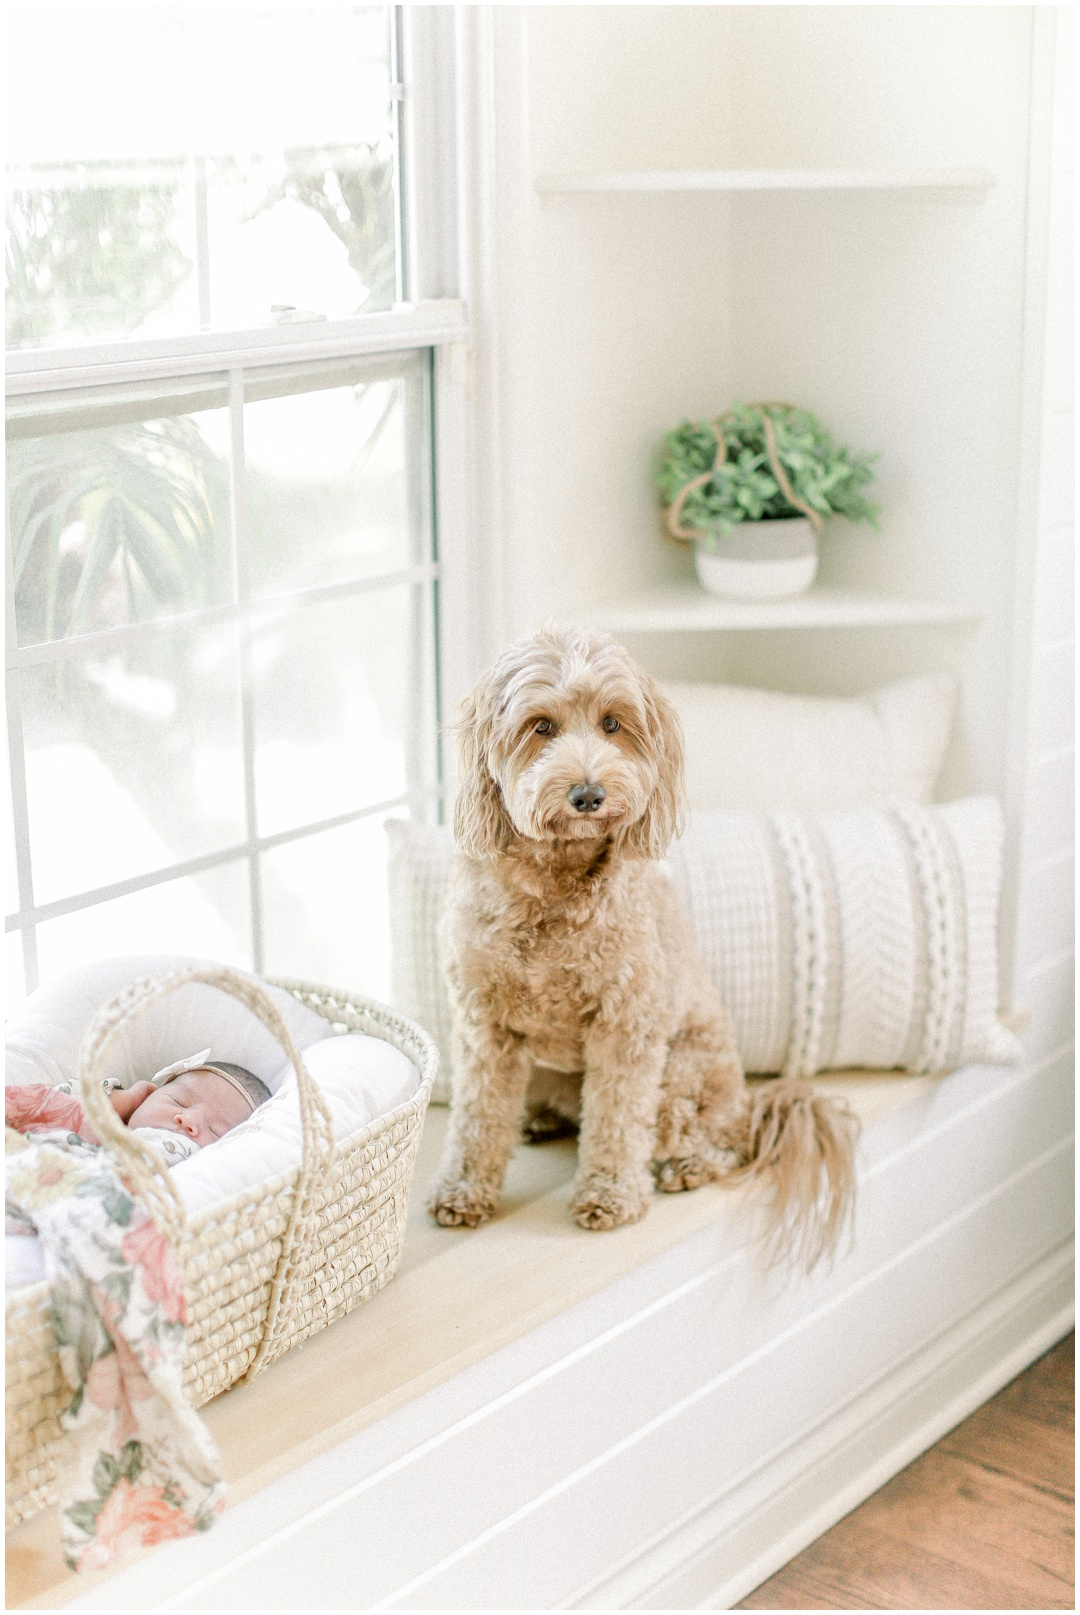 Newport_Beach_Newborn_Light_Airy_Natural_Photographer_Newport_Beach_Photographer_Orange_County_Family_Photographer_Cori_Kleckner_Photography_Newport_Beach_Newborn_Photographer_Taylor_Colacion_Family__4254.jpg